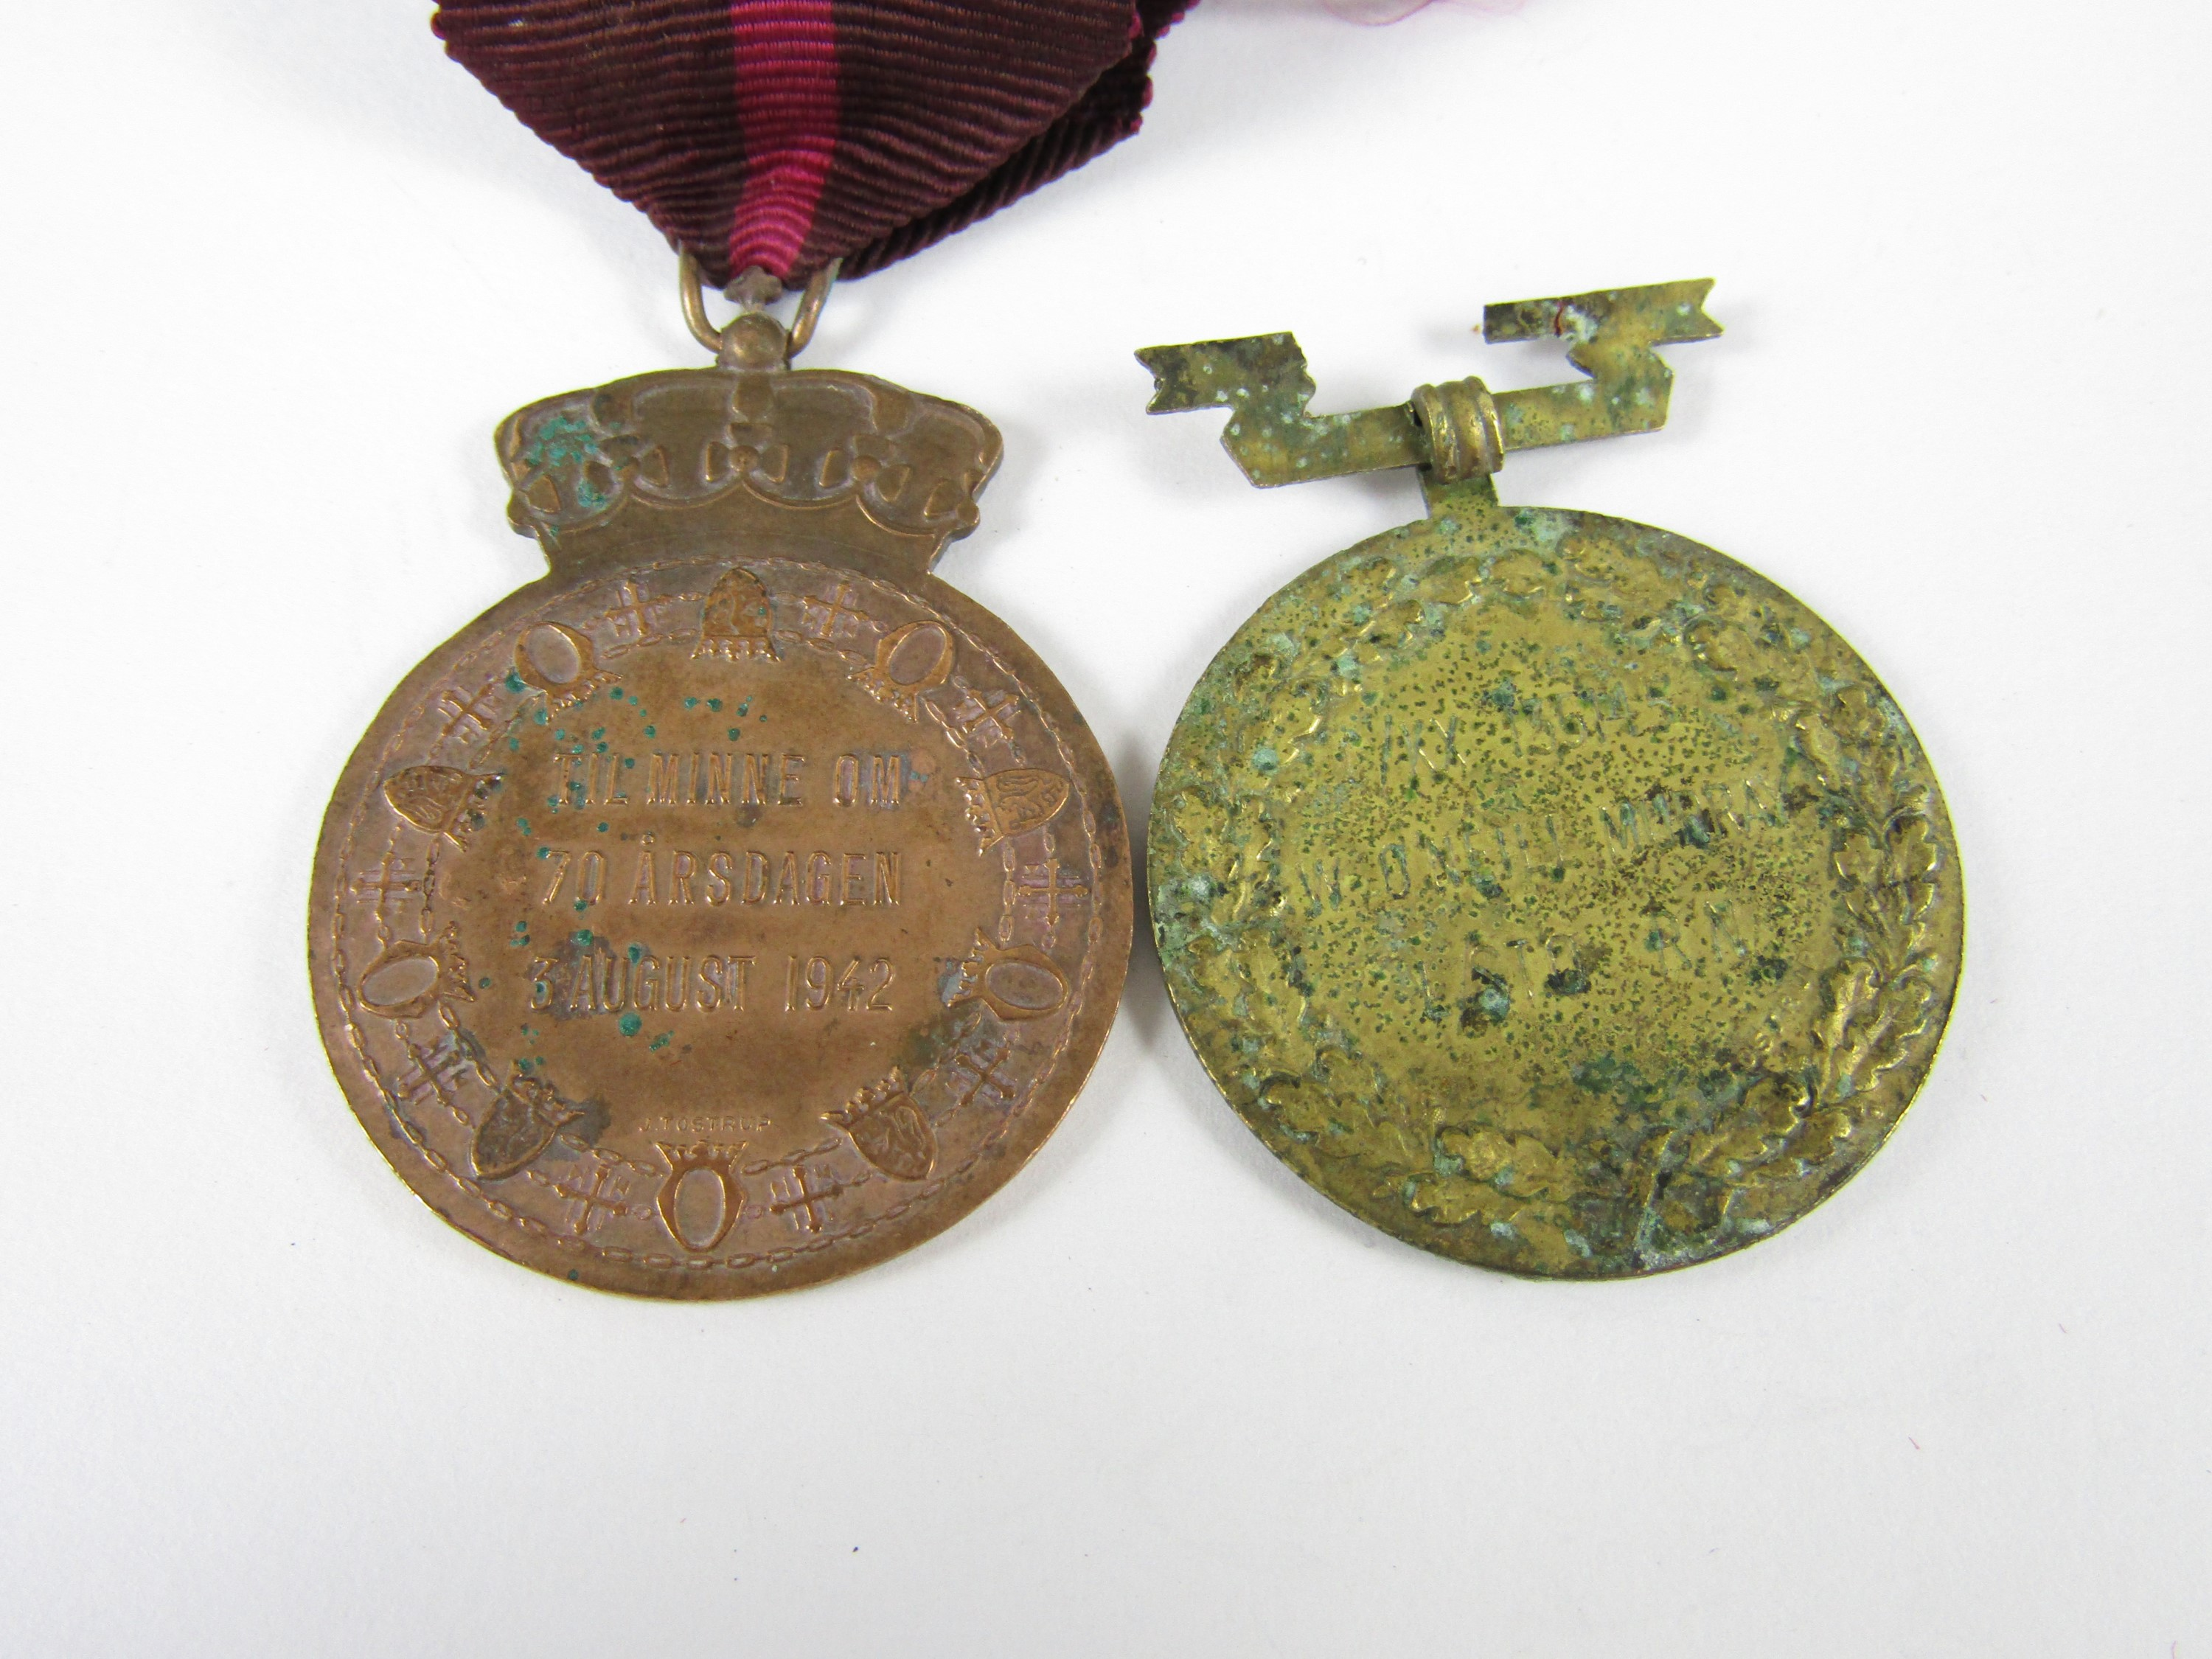 Lot 33 - A Norwegian King Haakon VII's Liberty Medal to C/KX 134145 W O'Neil Murray, 1 Sto, Royal Navy,